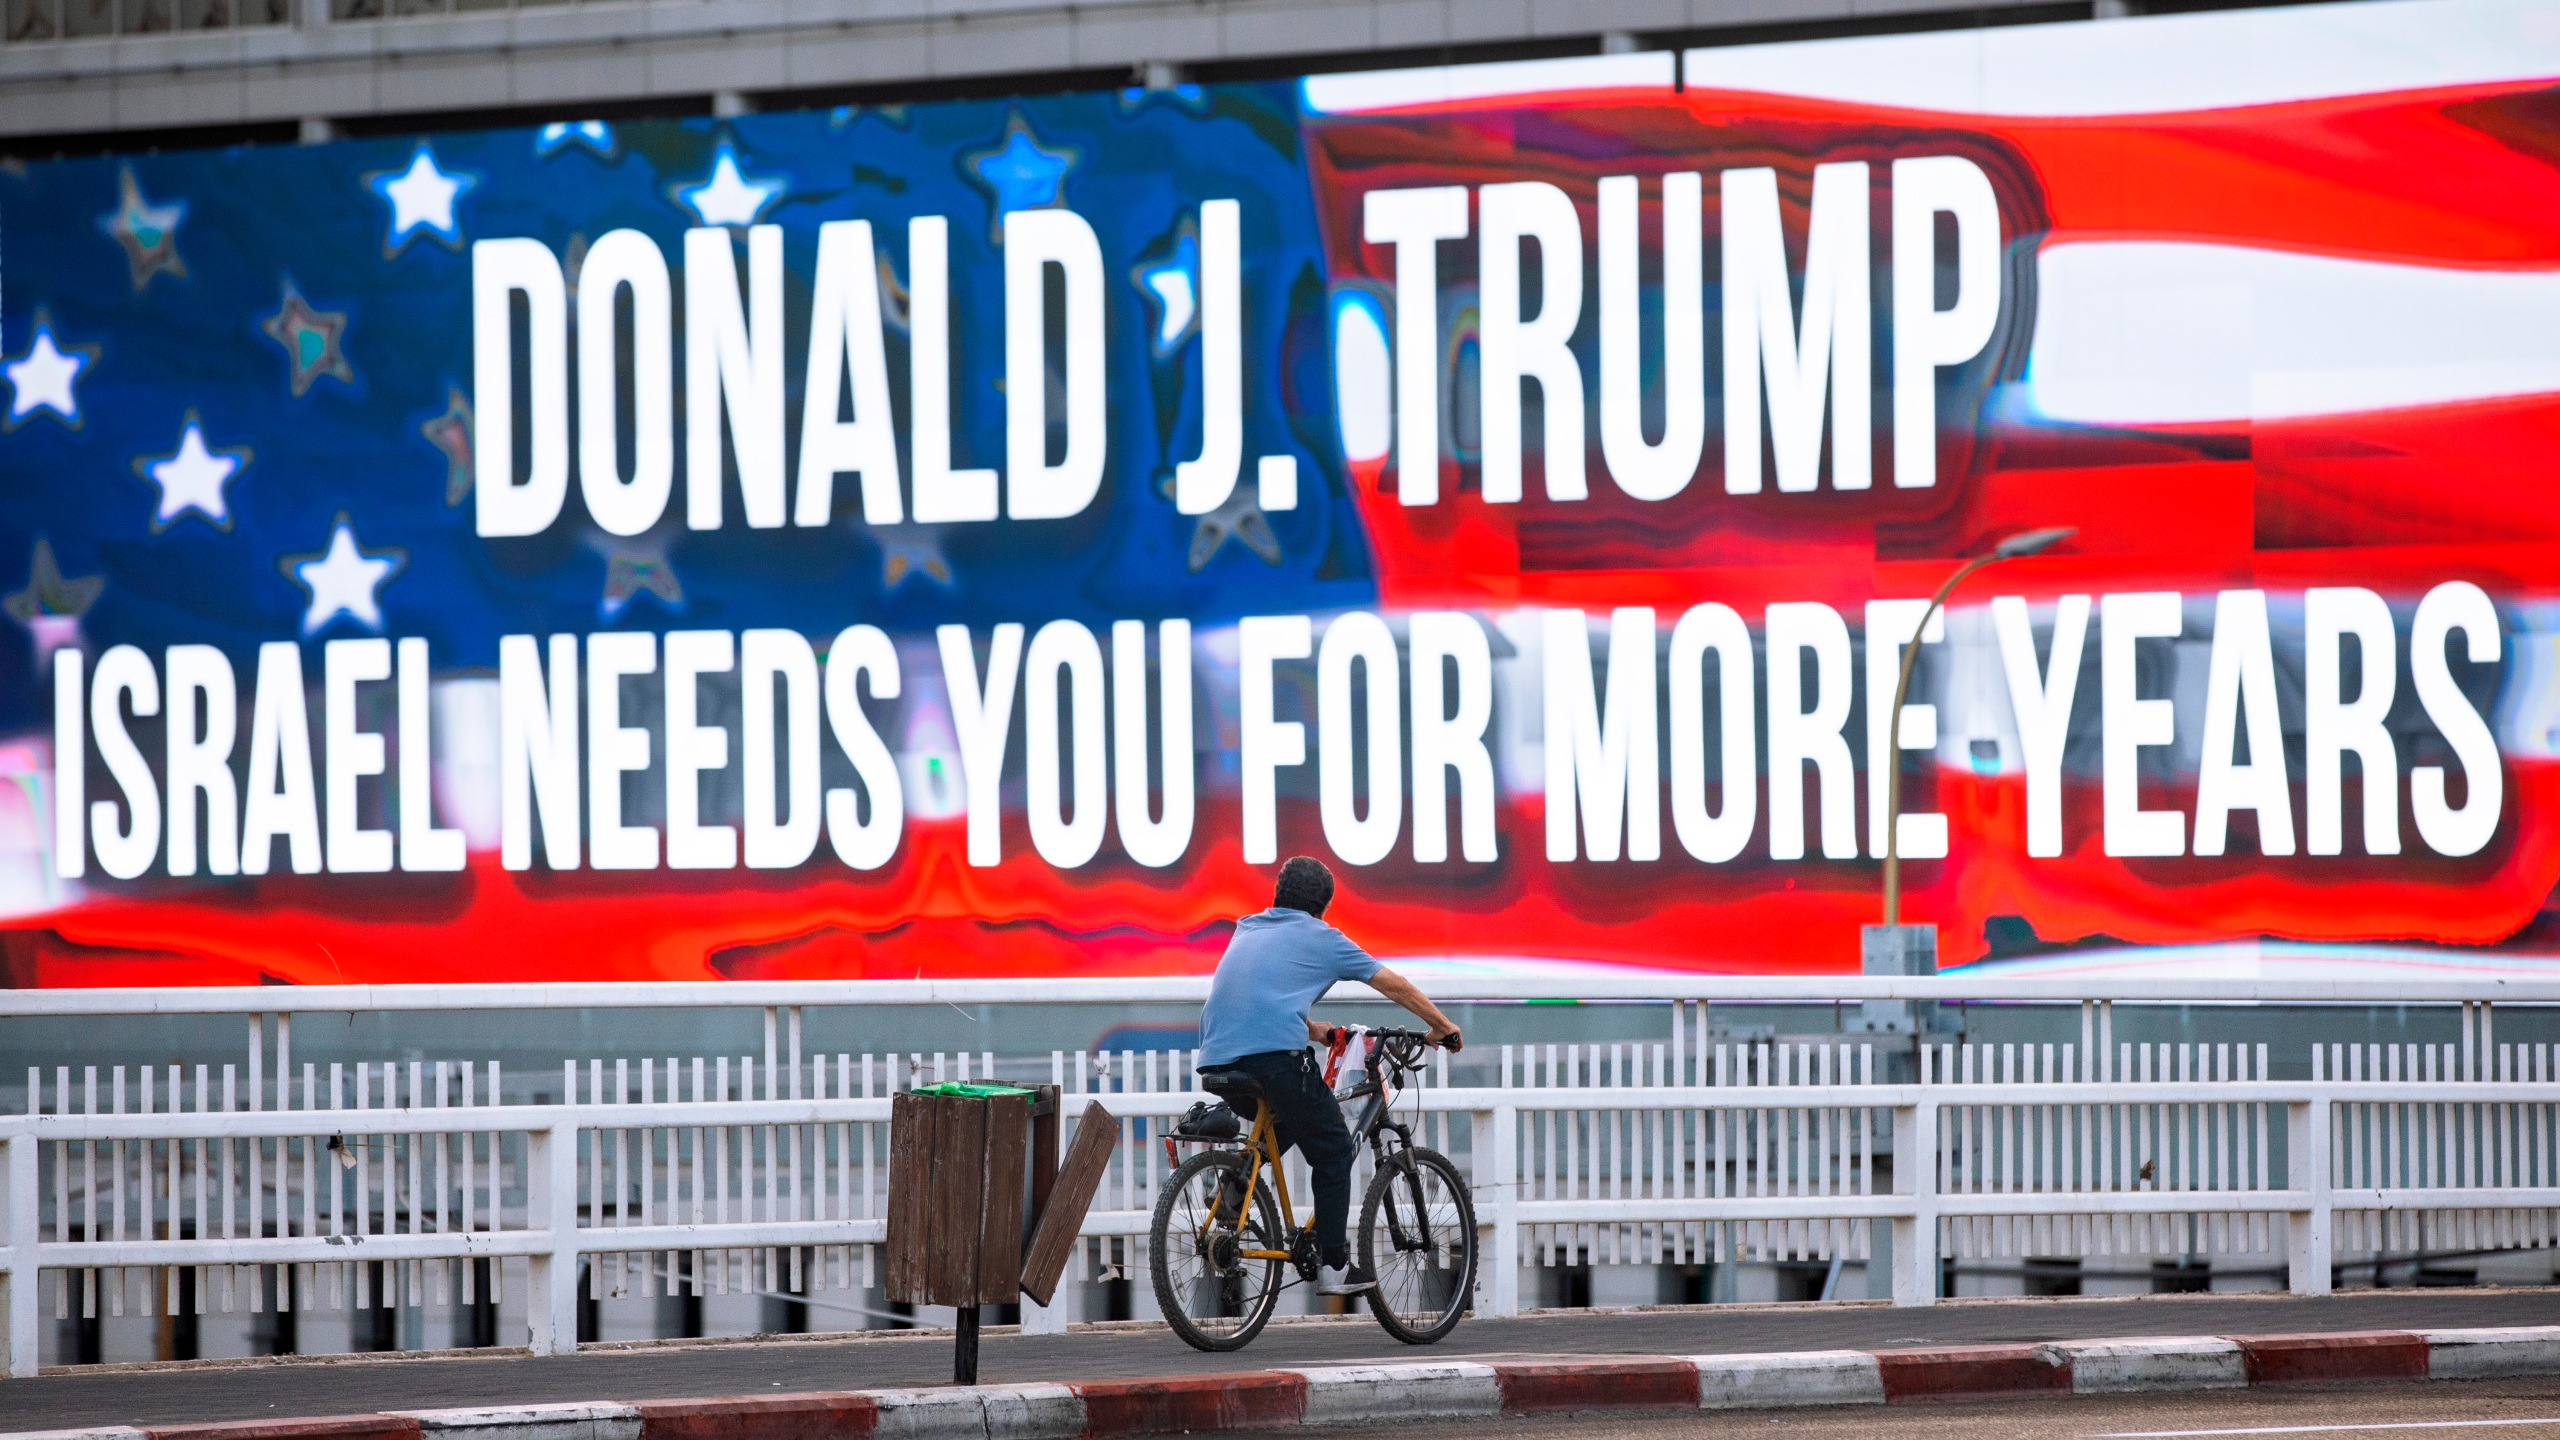 In this Oct. 21, 2020 file photo a cyclist rides next to a billboard supporting President Donald Trump in Tel Aviv ahead of the U.S presidential election. (Oded Balilty/Associated Press)